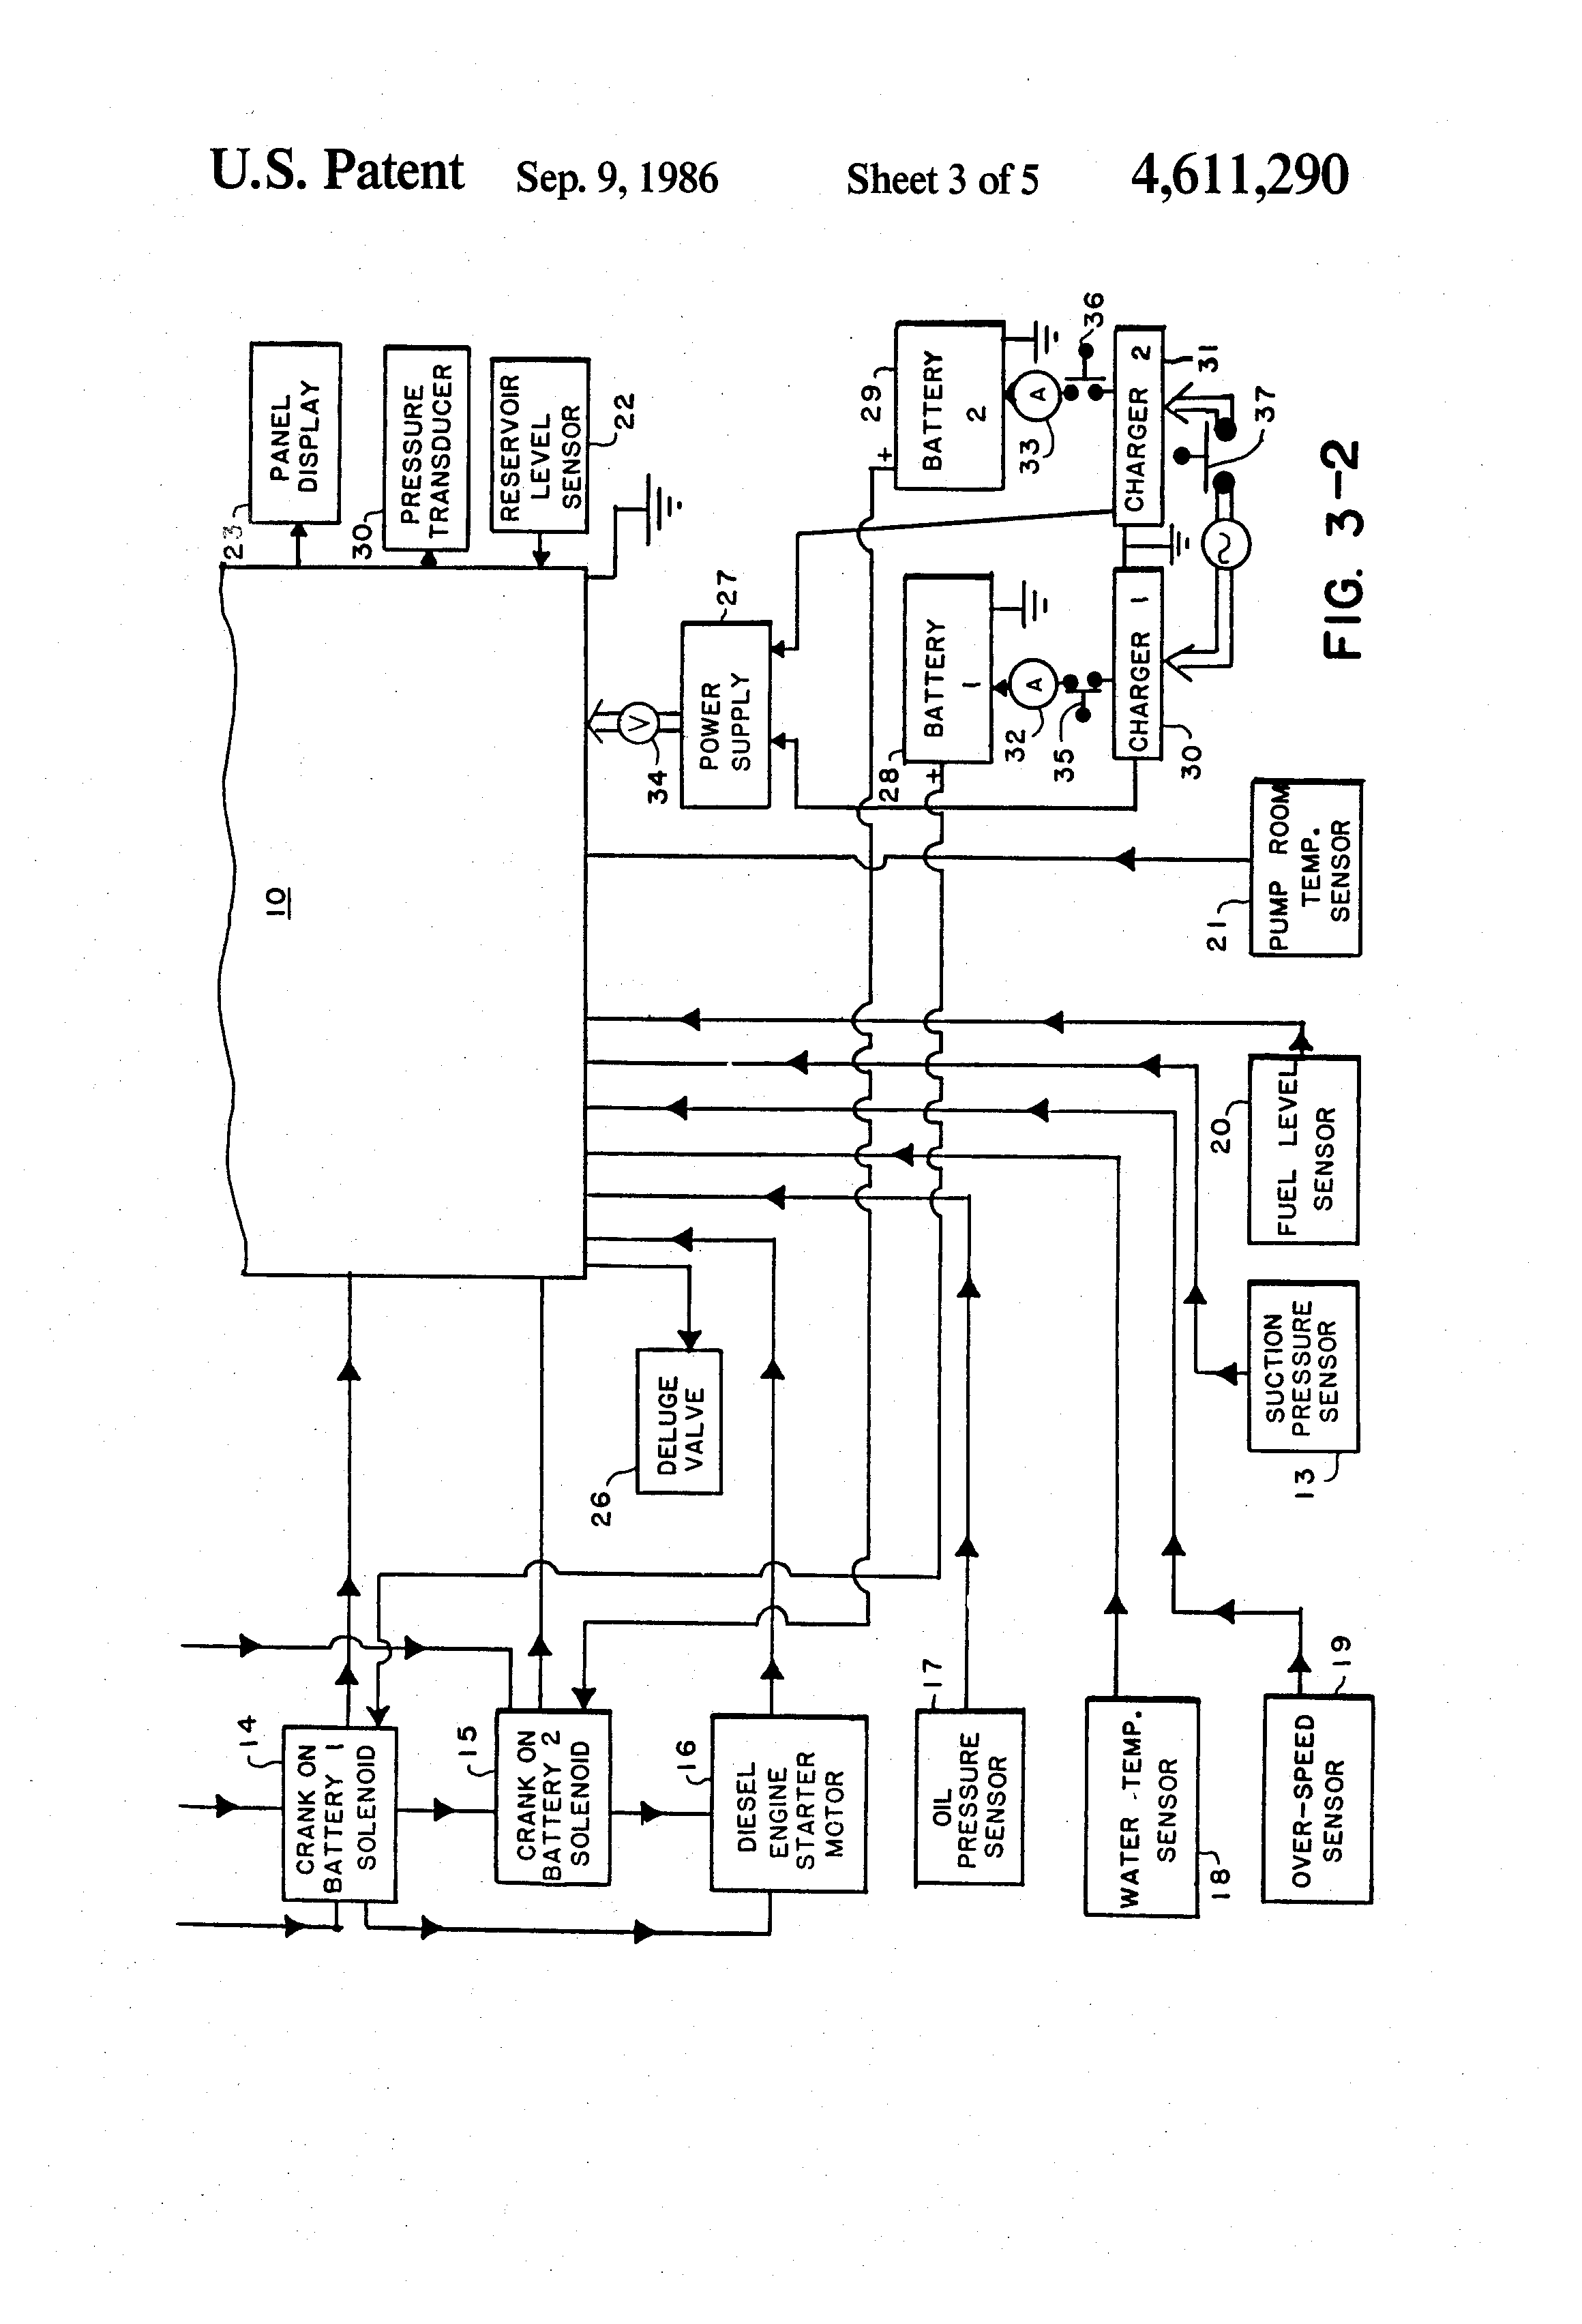 White Rodgers 90-380 Wiring Diagram from diagramweb.net